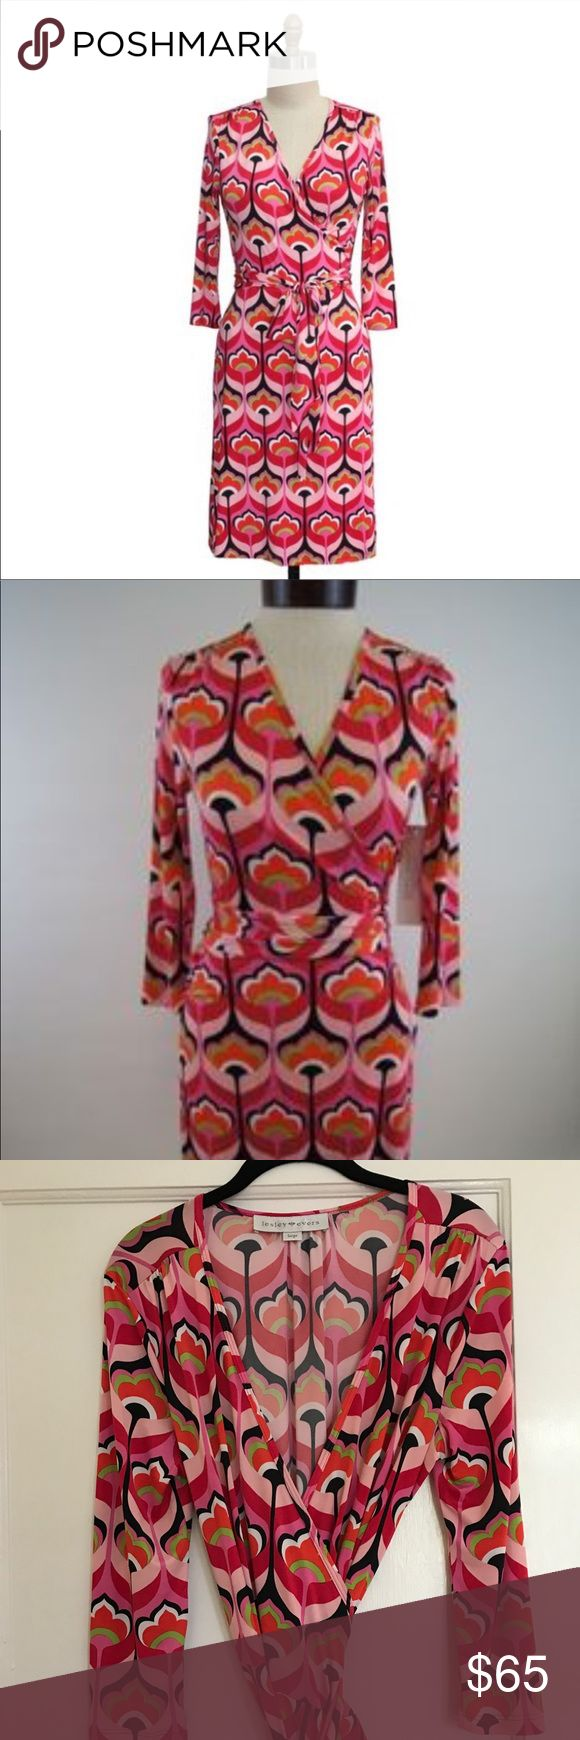 Lesley Evers, Pink Wrap Dress, Large Never worn adorable patterned wrap dress. Lesley Evers is a local SF designer. Tagged Lily for visibility. Beautiful polyester/spandex wrap dress in pinks, orange, black, and green with a mid century flair. 3/4 sleeve and wrap around bodice. Photos 6 & 7 are to see what the fit is like. Both are the same wrap dress in a different pattern. Lilly Pulitzer Dresses